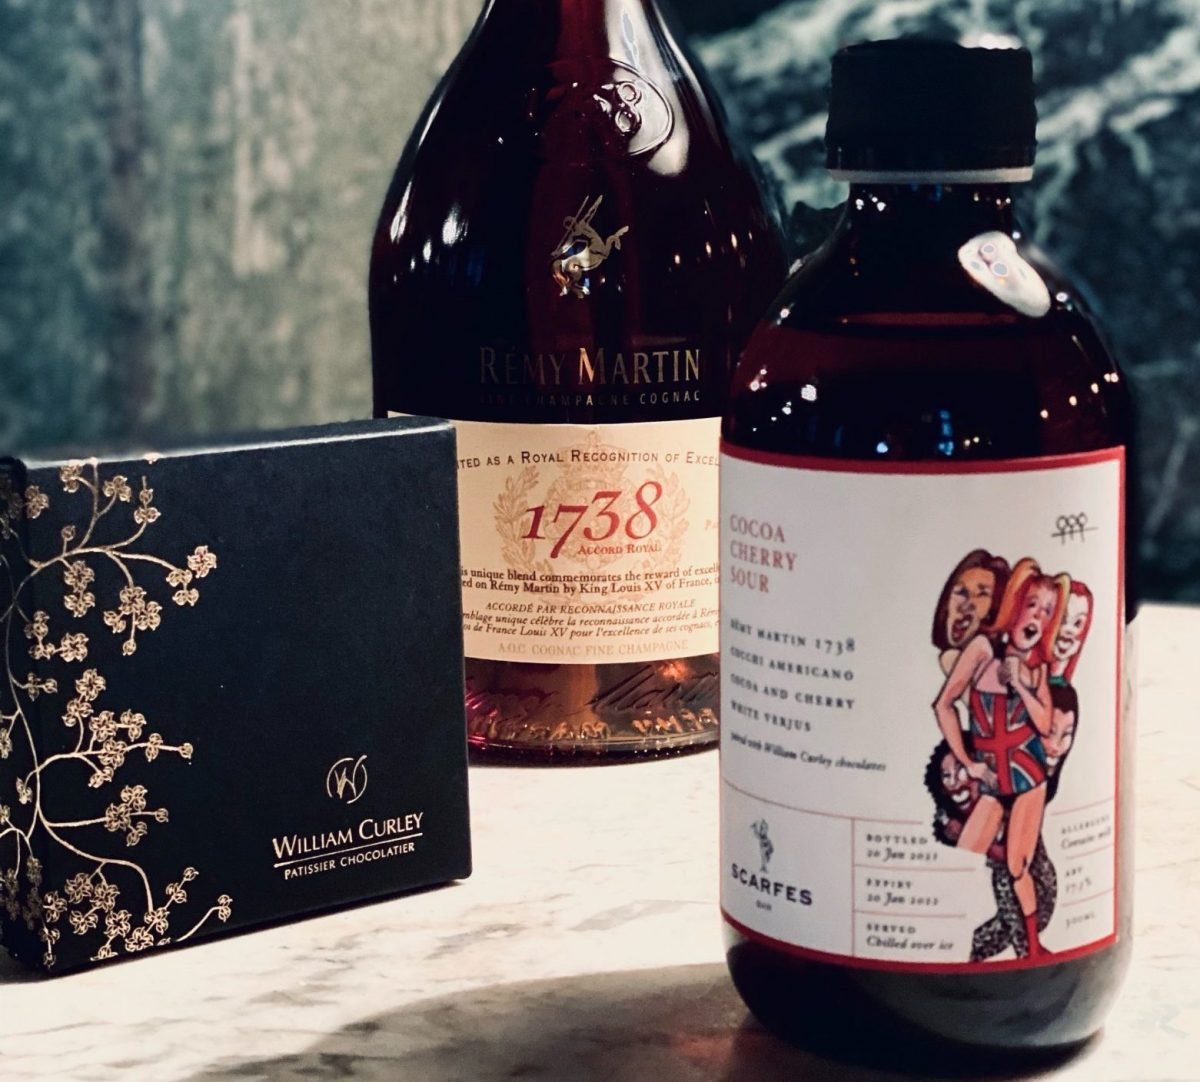 remy-martin-chocolate-and-cocktails